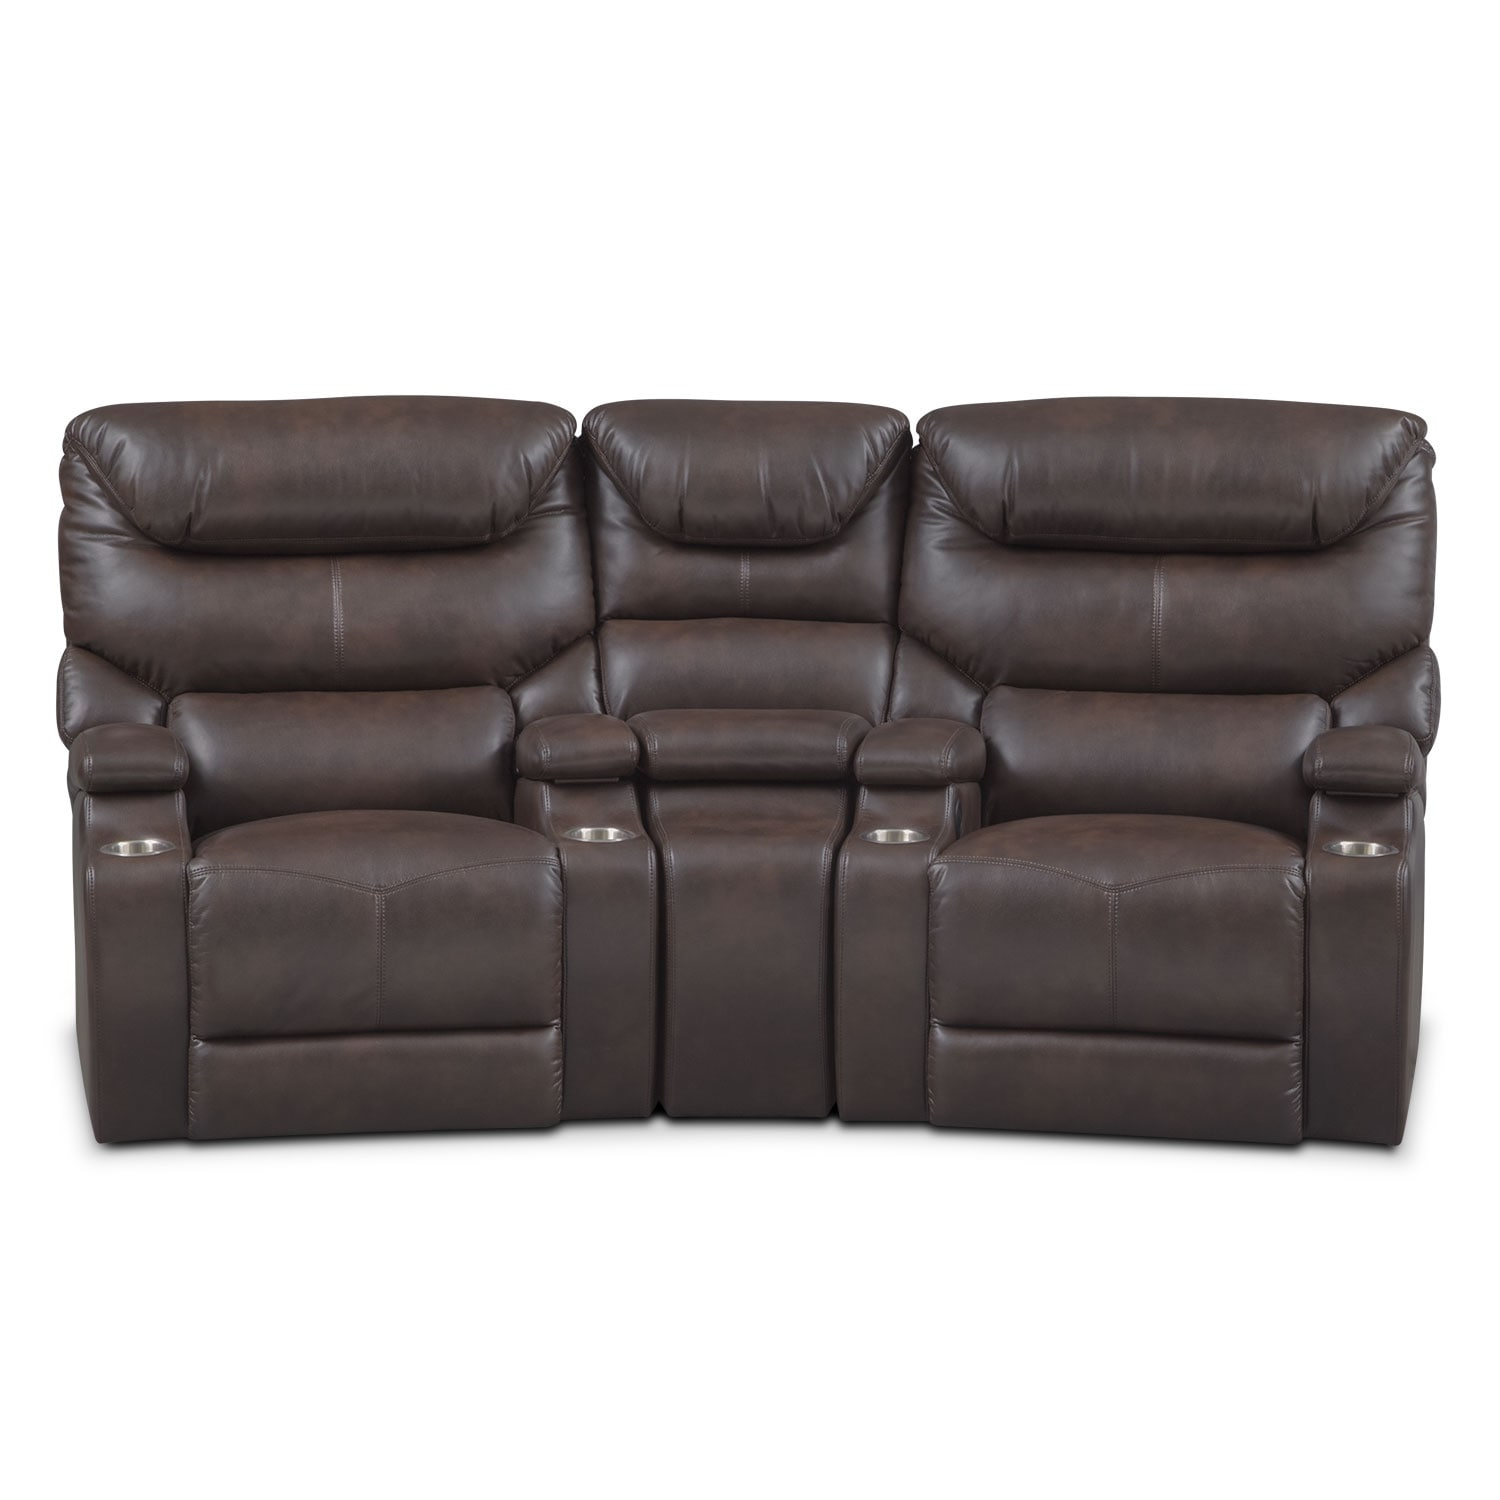 Living Room Furniture - Jupiter 3-Piece Power Reclining Home Theater Sectional - Brown